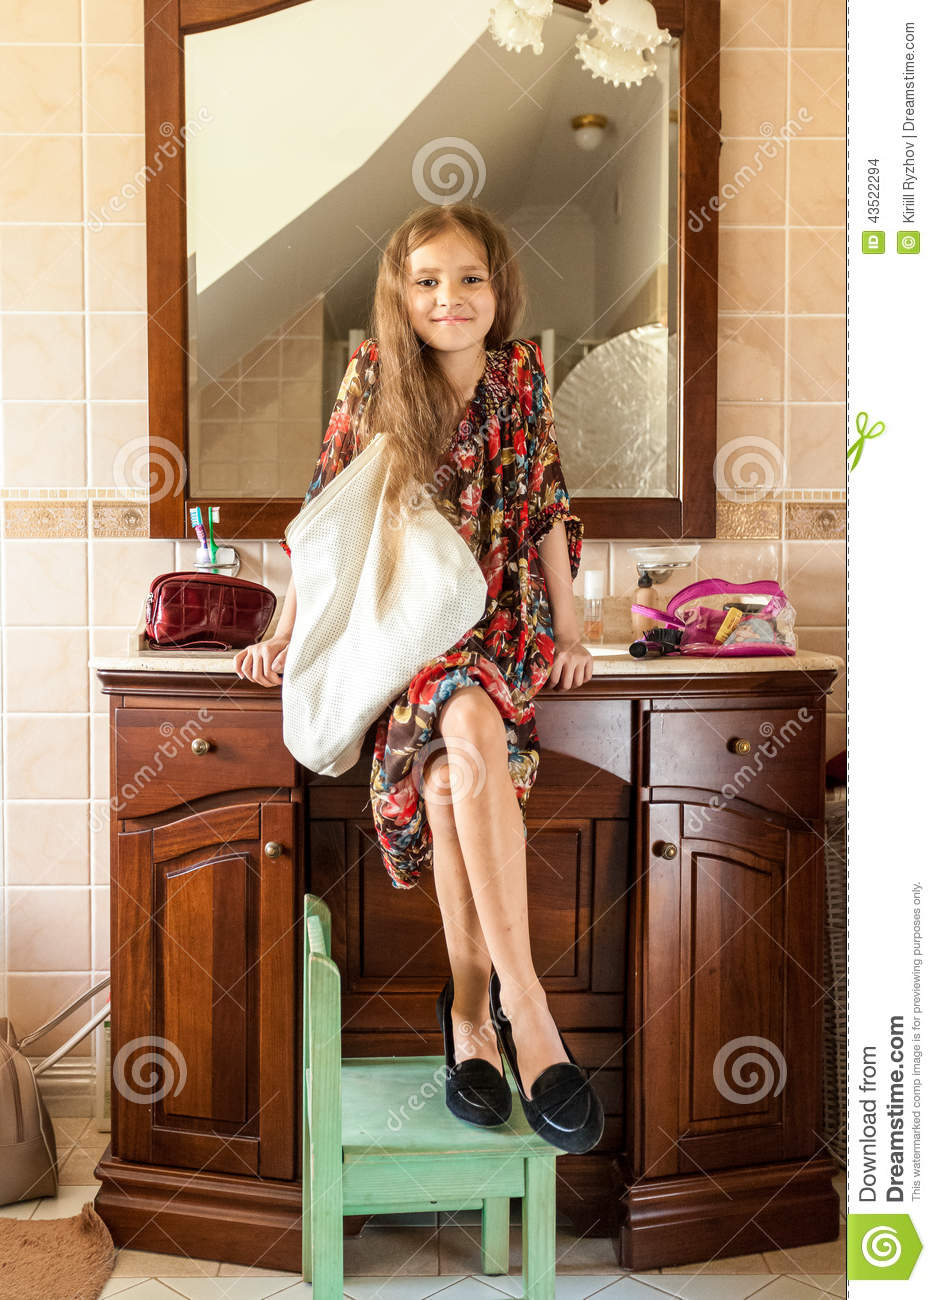 Photos of girl without any cloth in bathroom - Girl In Mothers Clothes Sitting On Sink At Bathroom